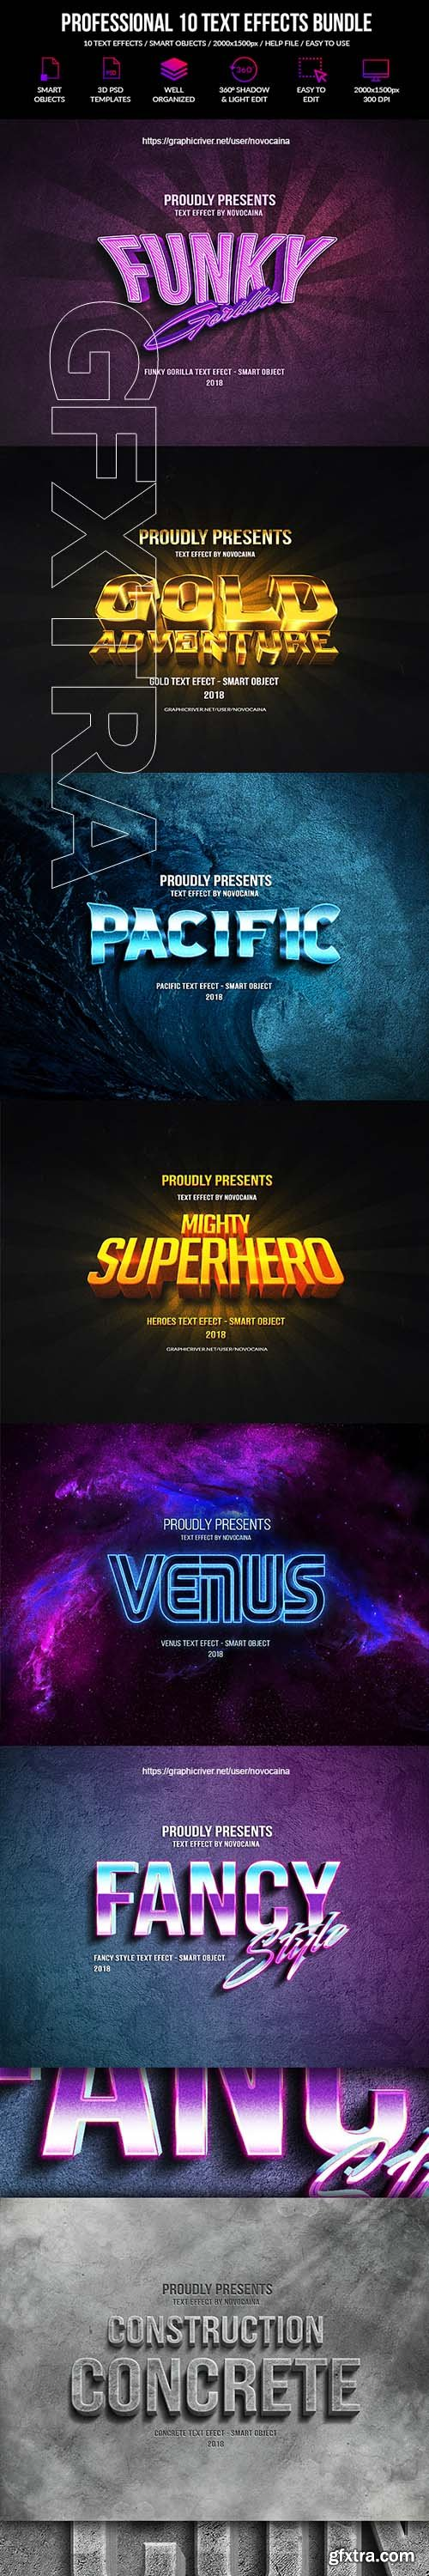 GraphicRiver - Professional 10 Text Effects Bundle 22563076